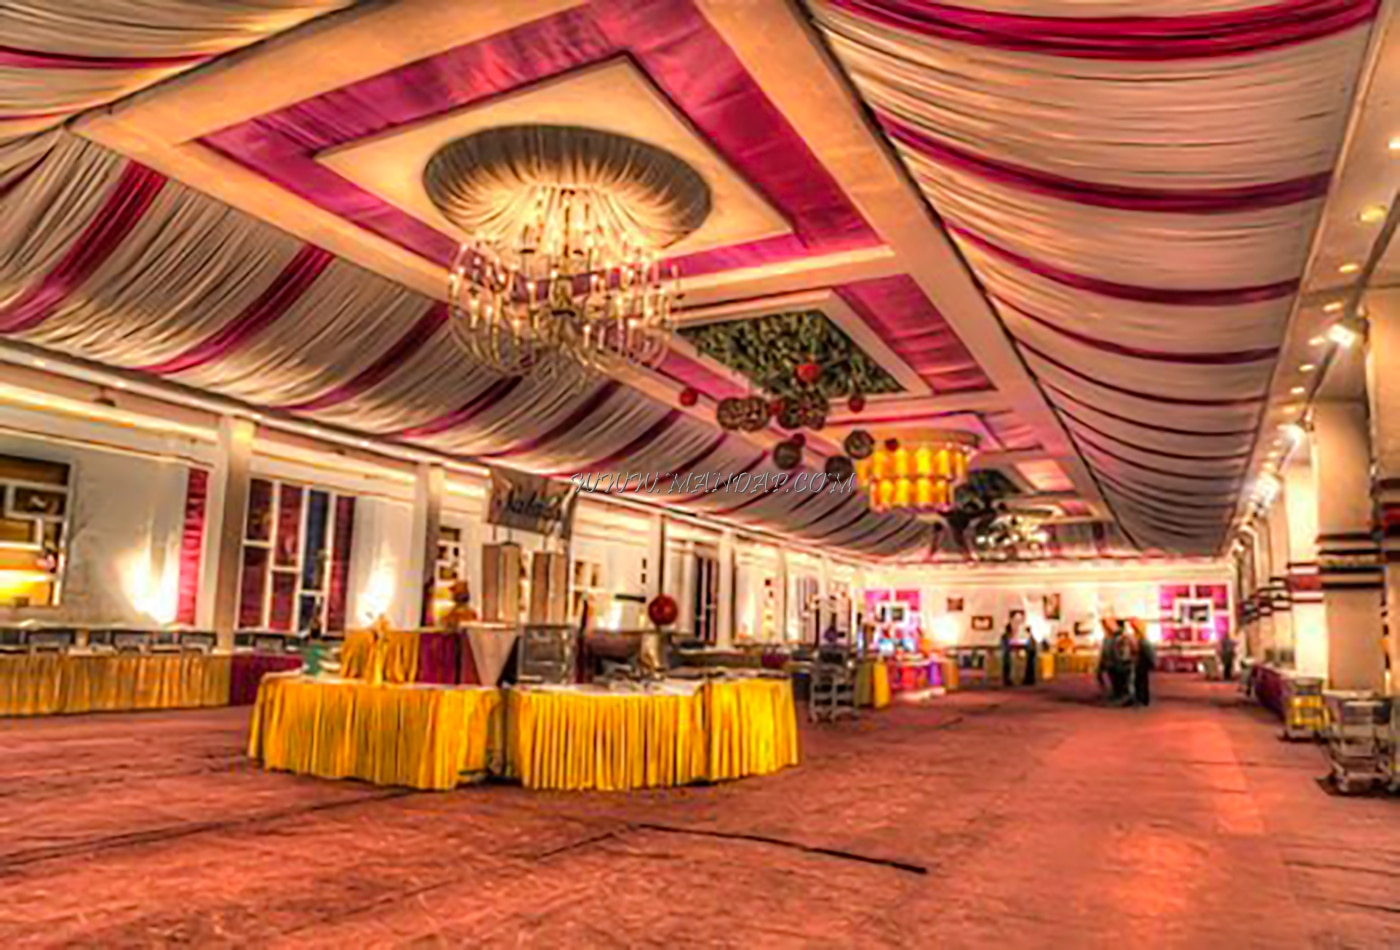 Find More Banquet Halls in Alipur